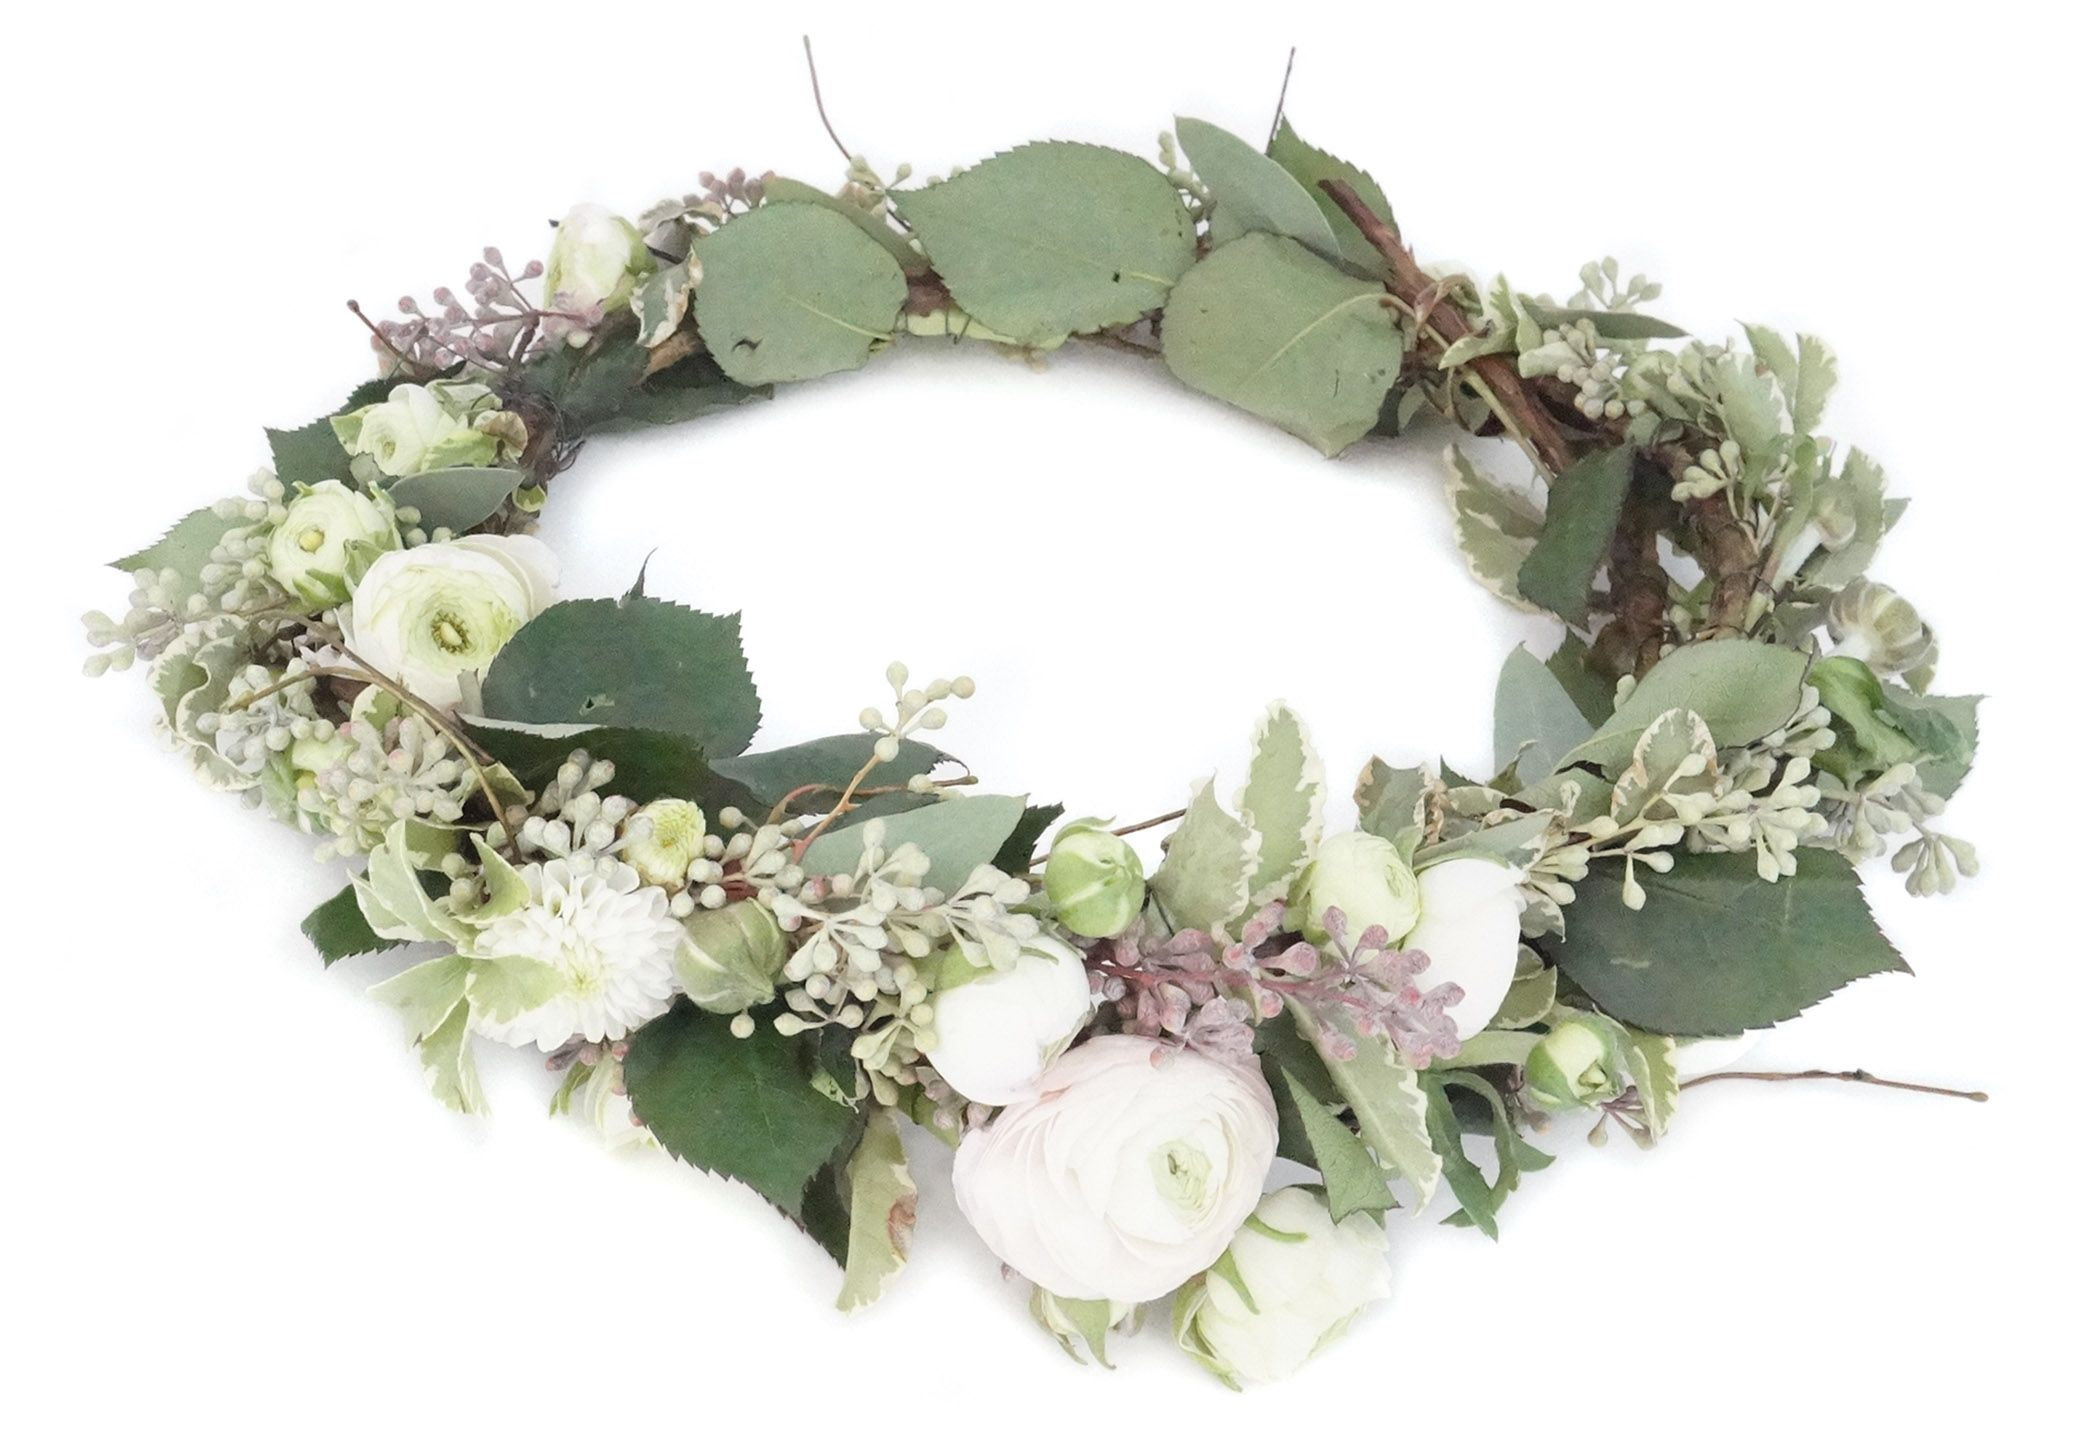 How to make a fresh flower crown fresh flowers flower crowns and how to make a fresh flower crown canadian living izmirmasajfo